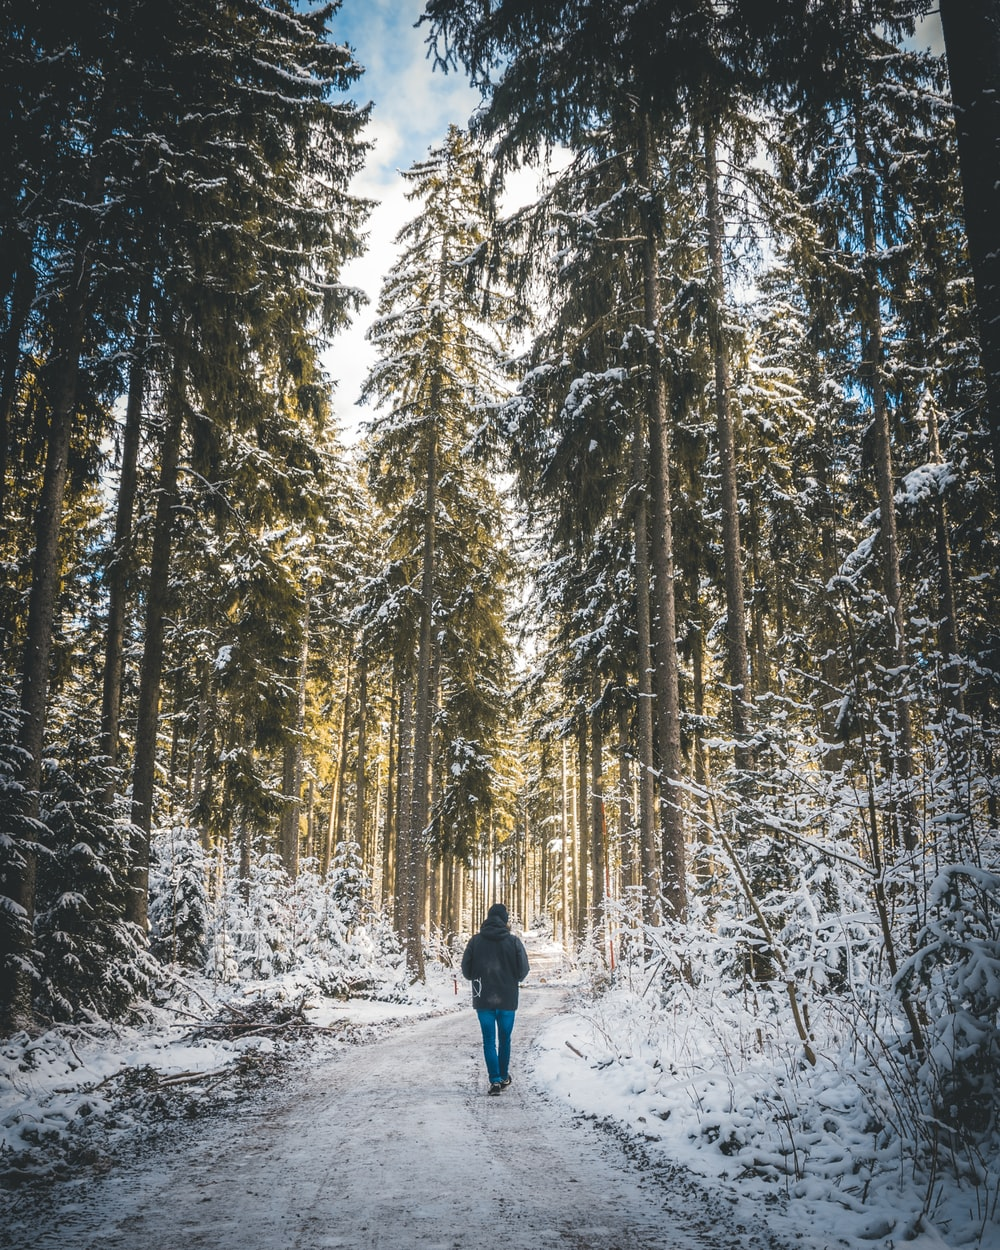 person in blue jacket and blue denim jeans walking on snow covered ground surrounded by trees